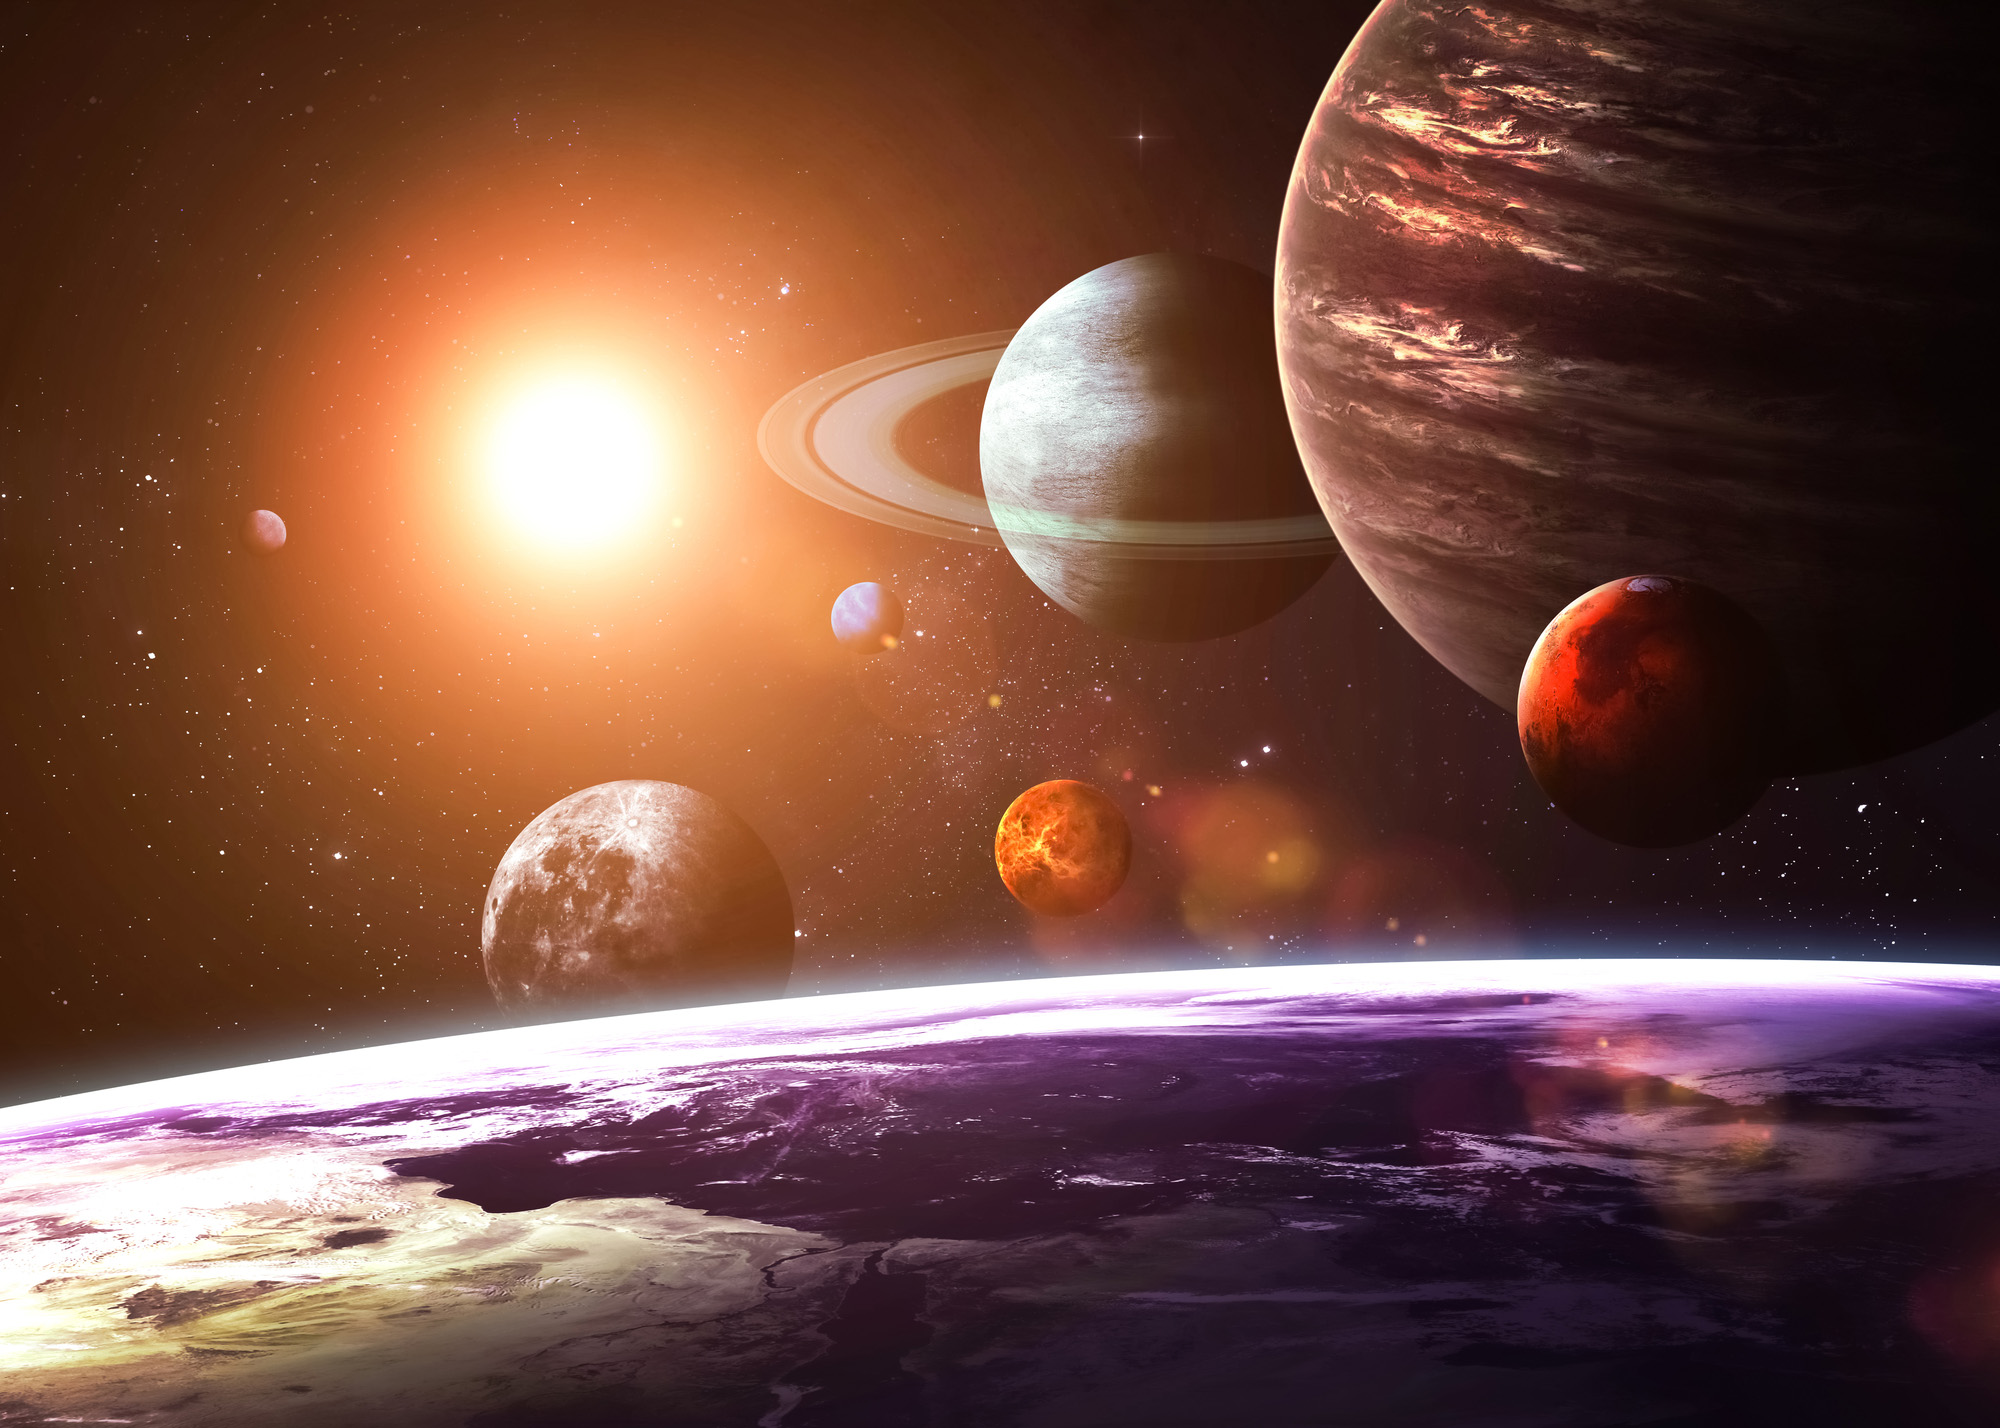 Solar system and space objects-72 ppi